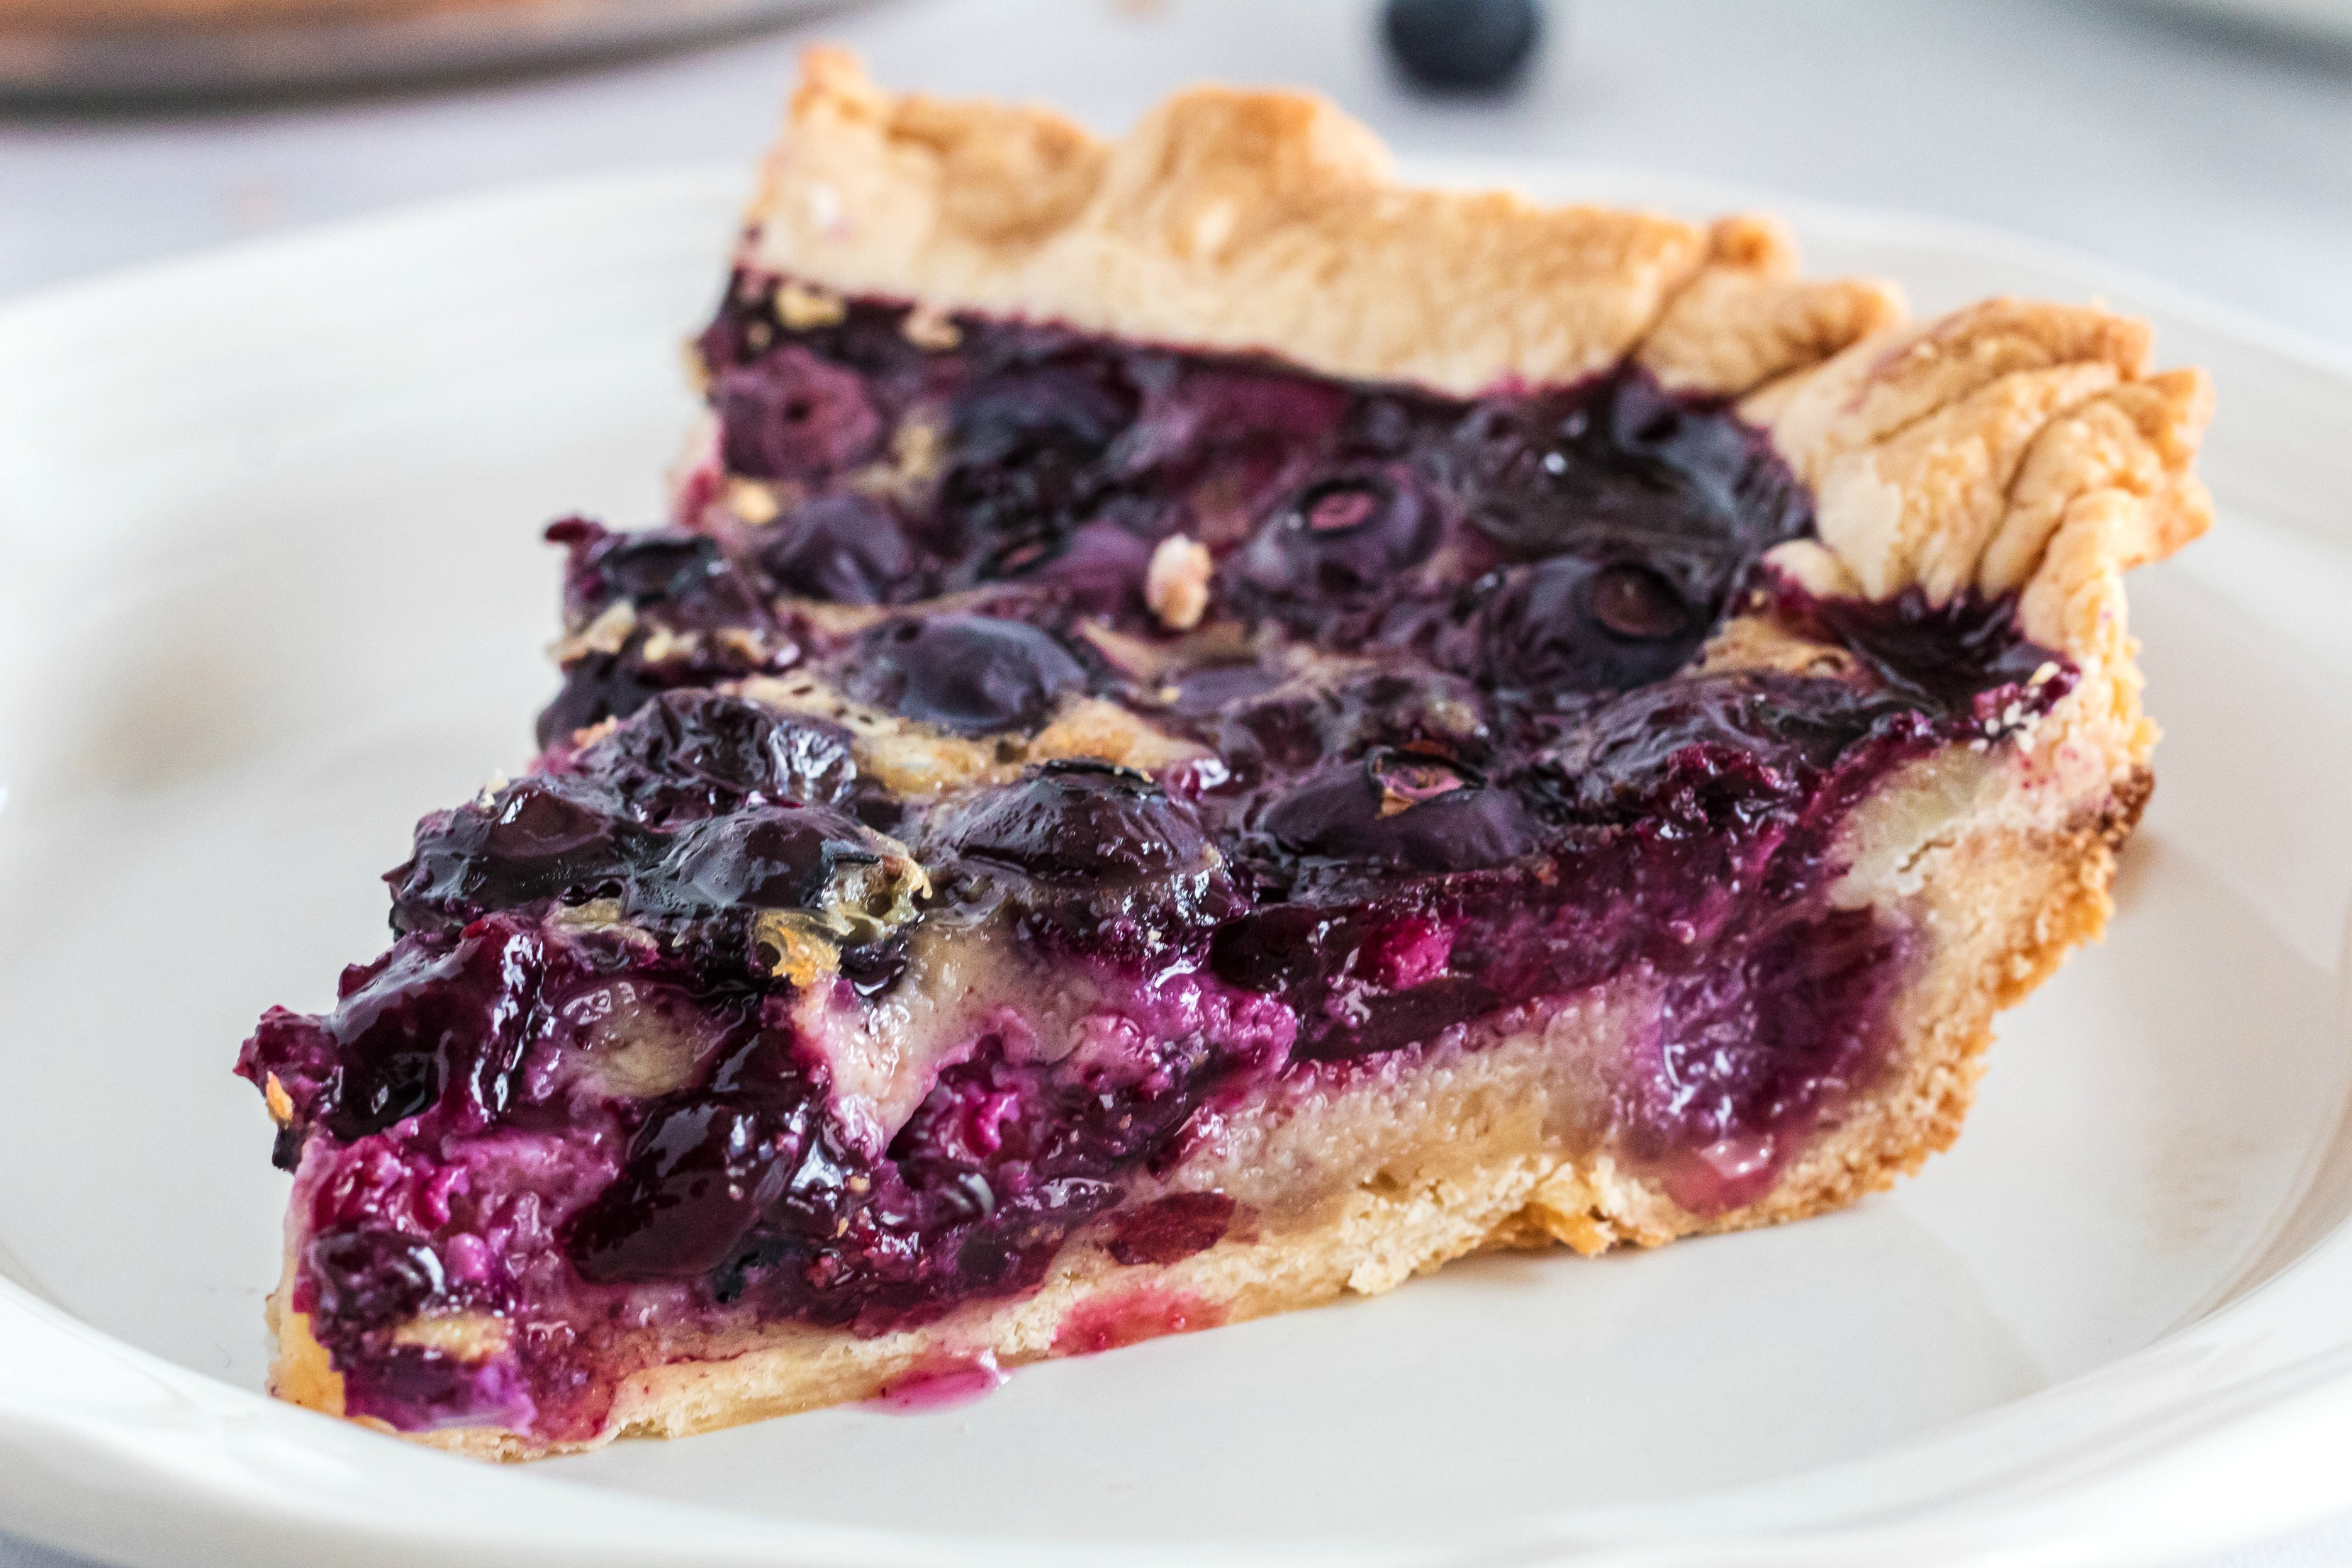 Homemade Blueberry Custard Pie